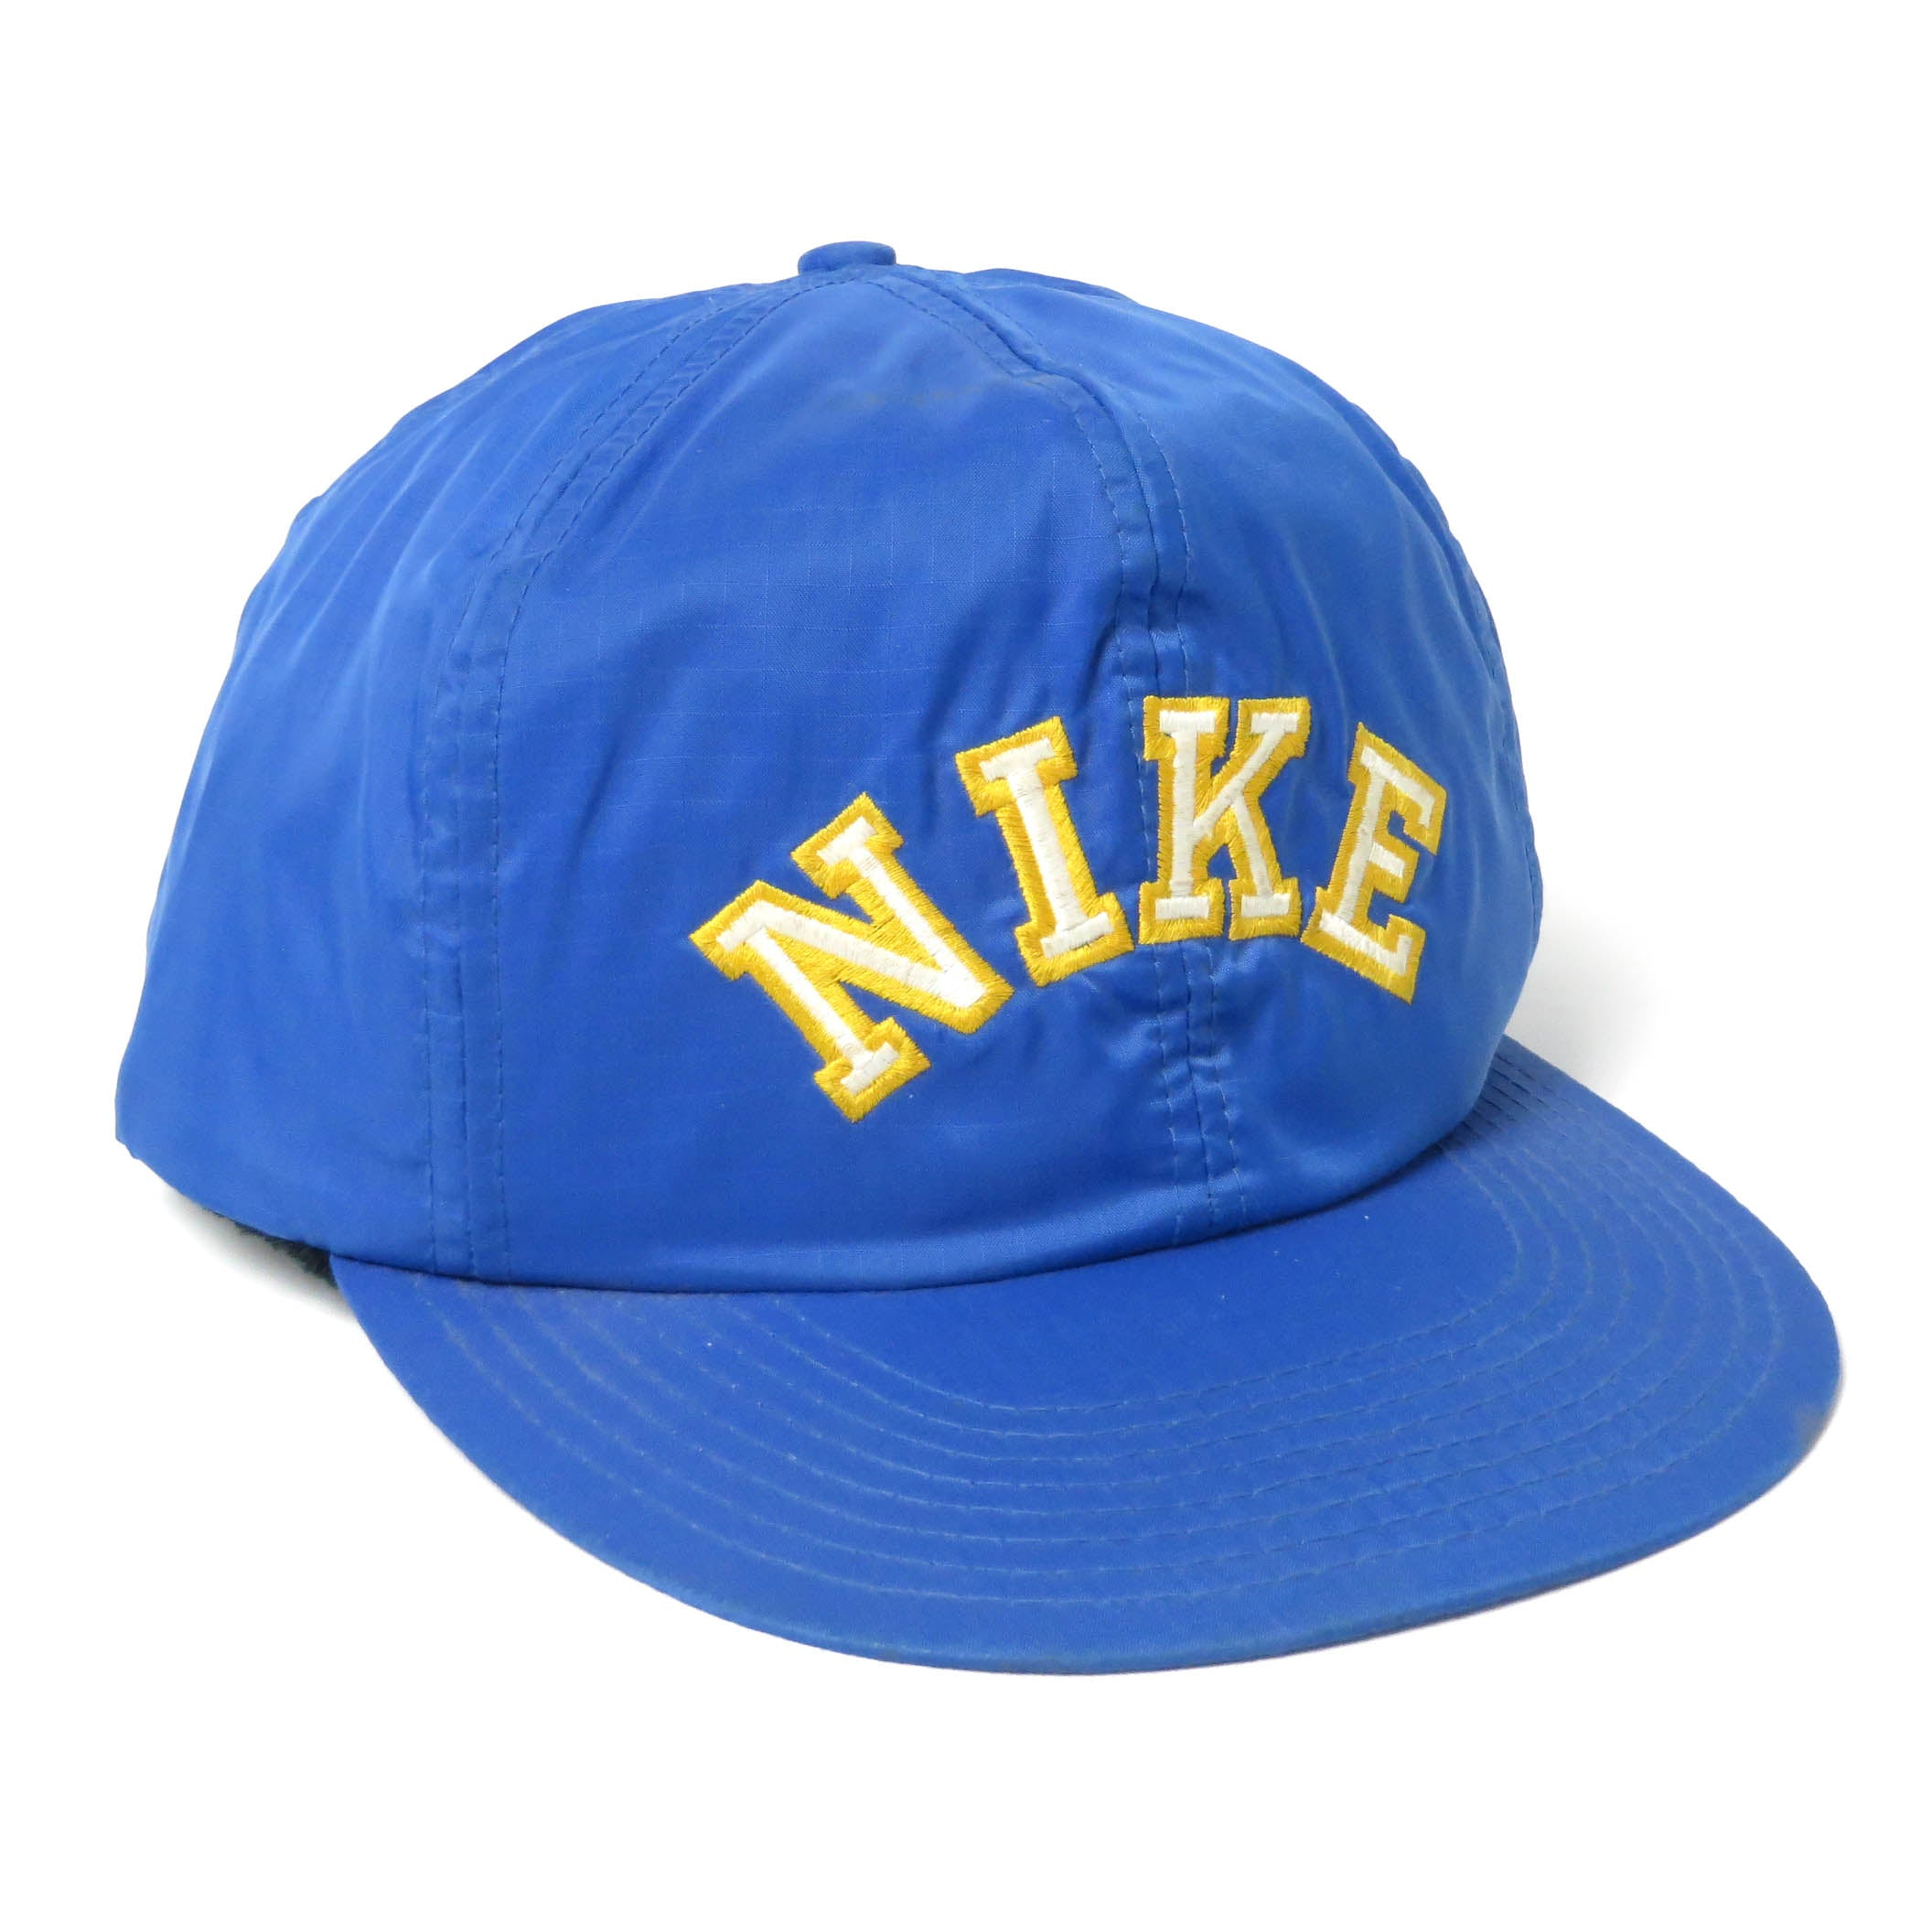 Vintage Nike Spell Out Nylon Snapback Hat